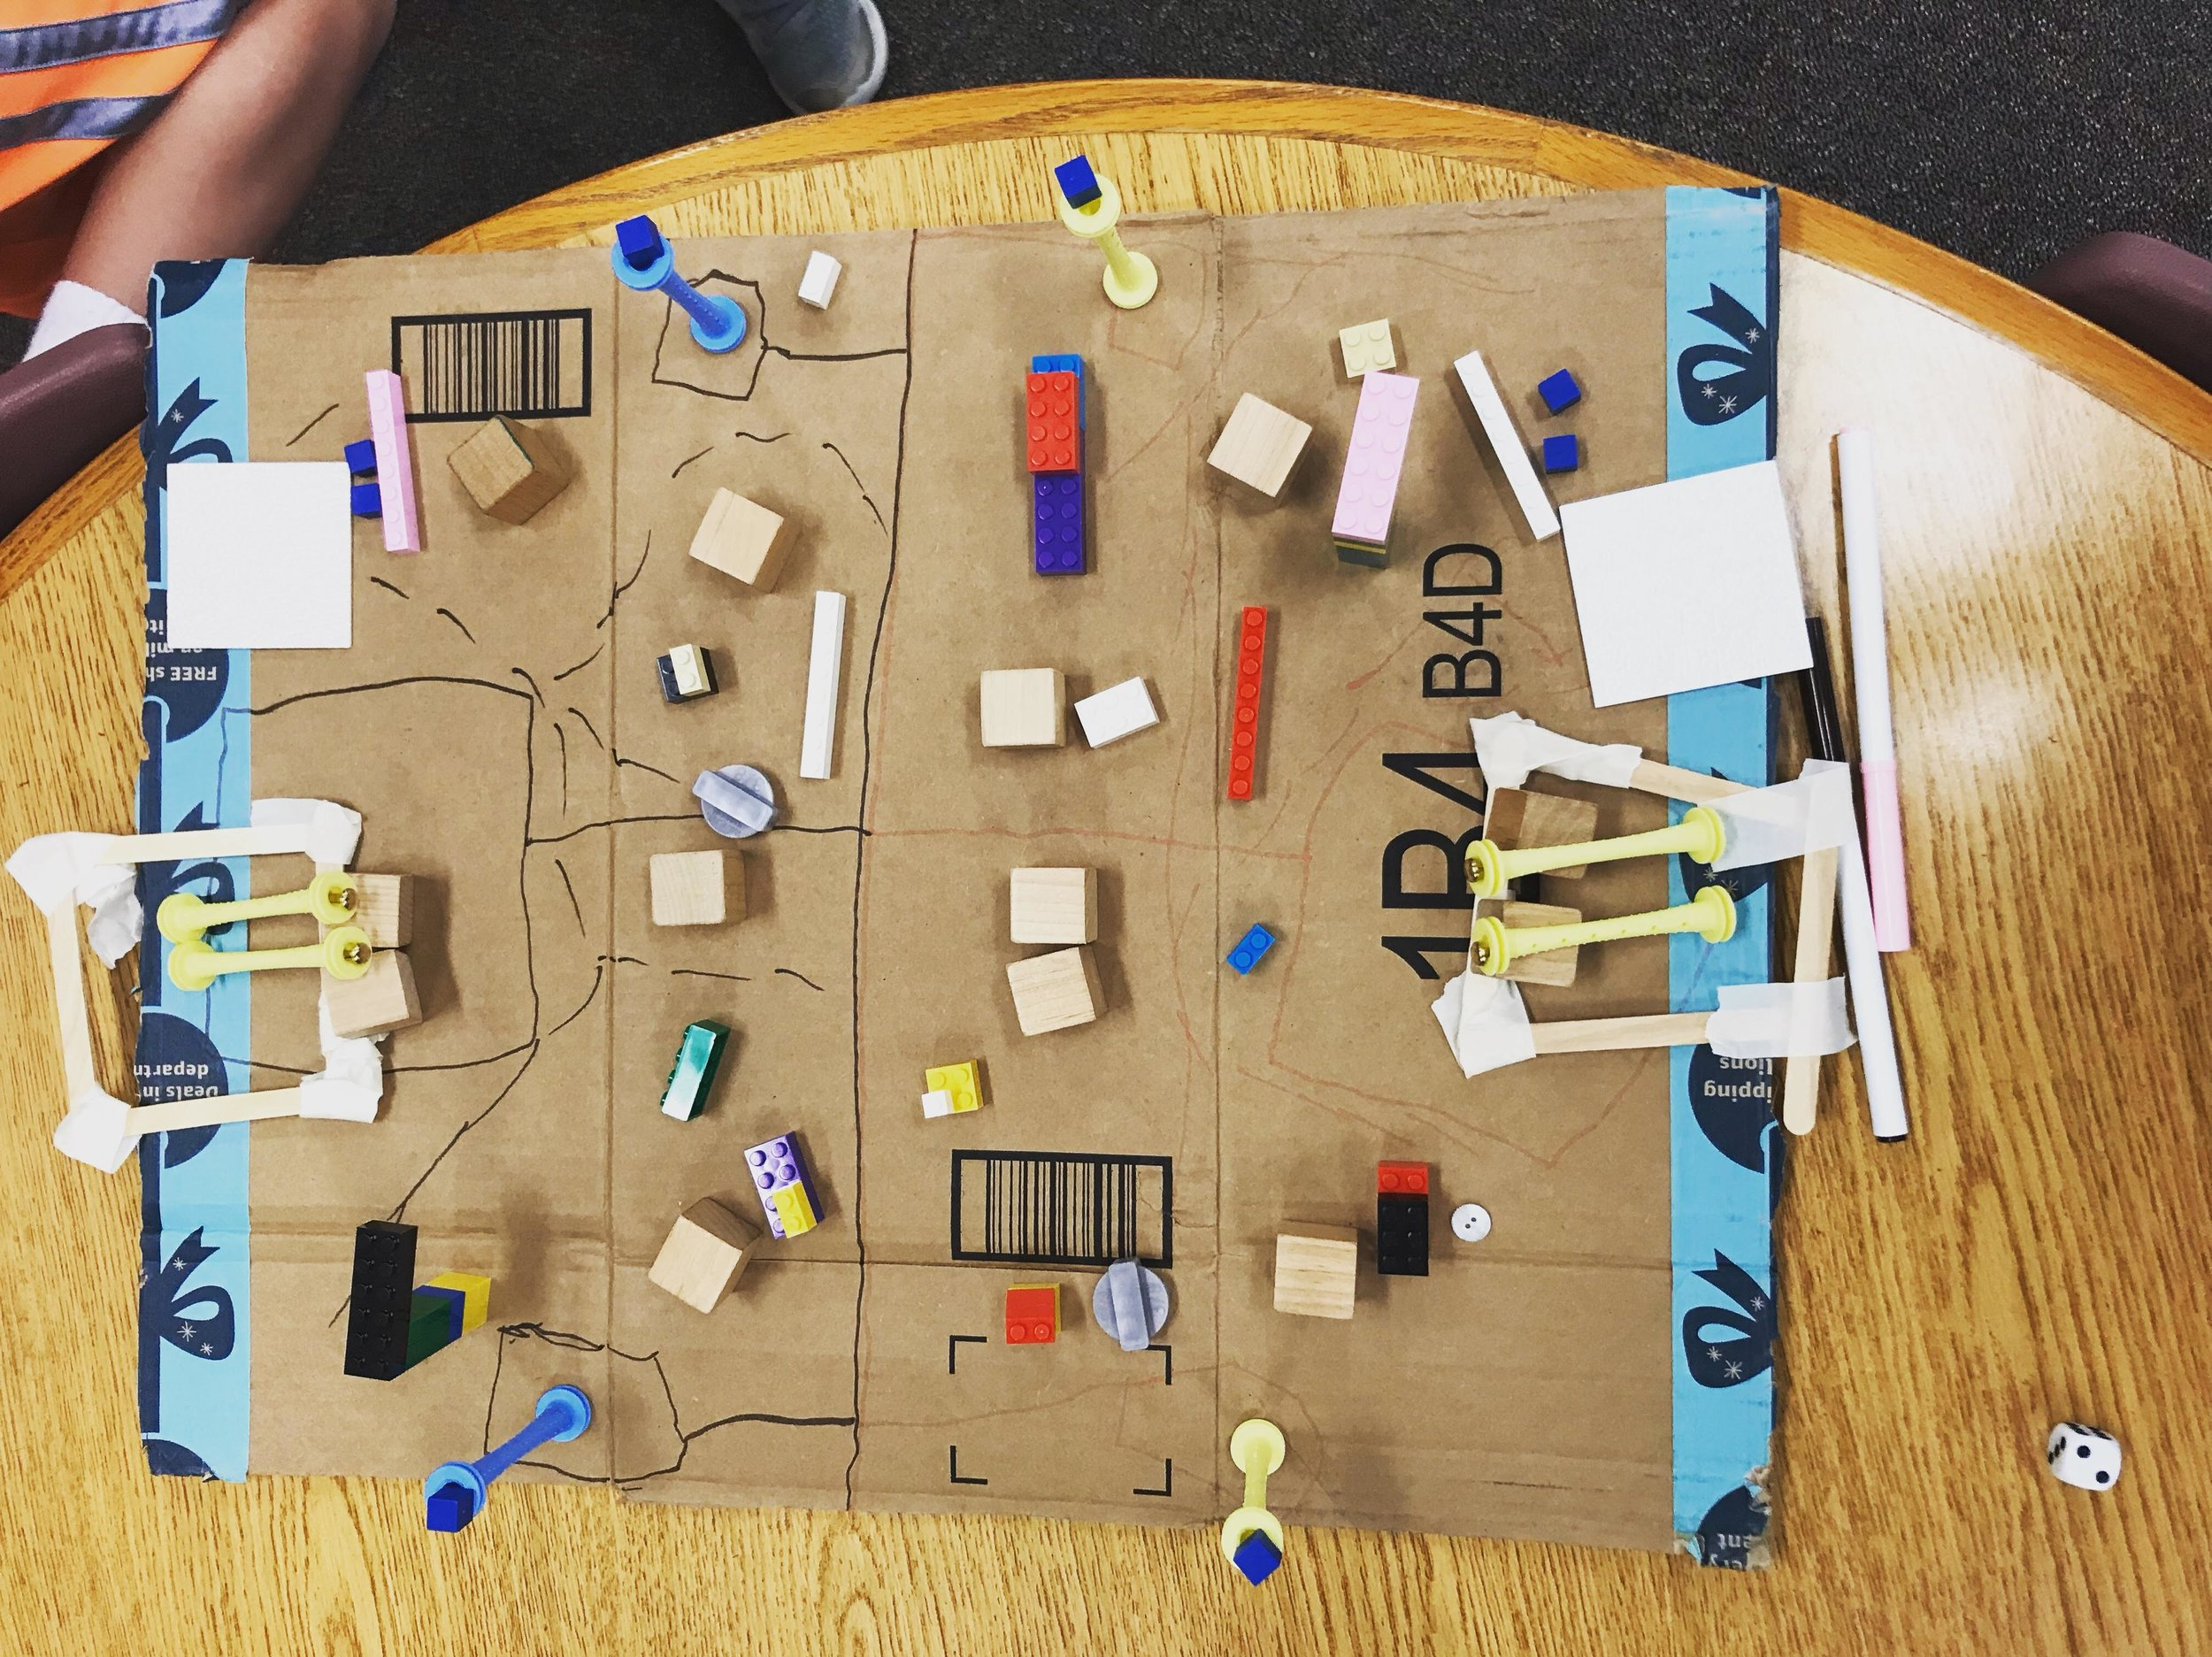 D's game board.